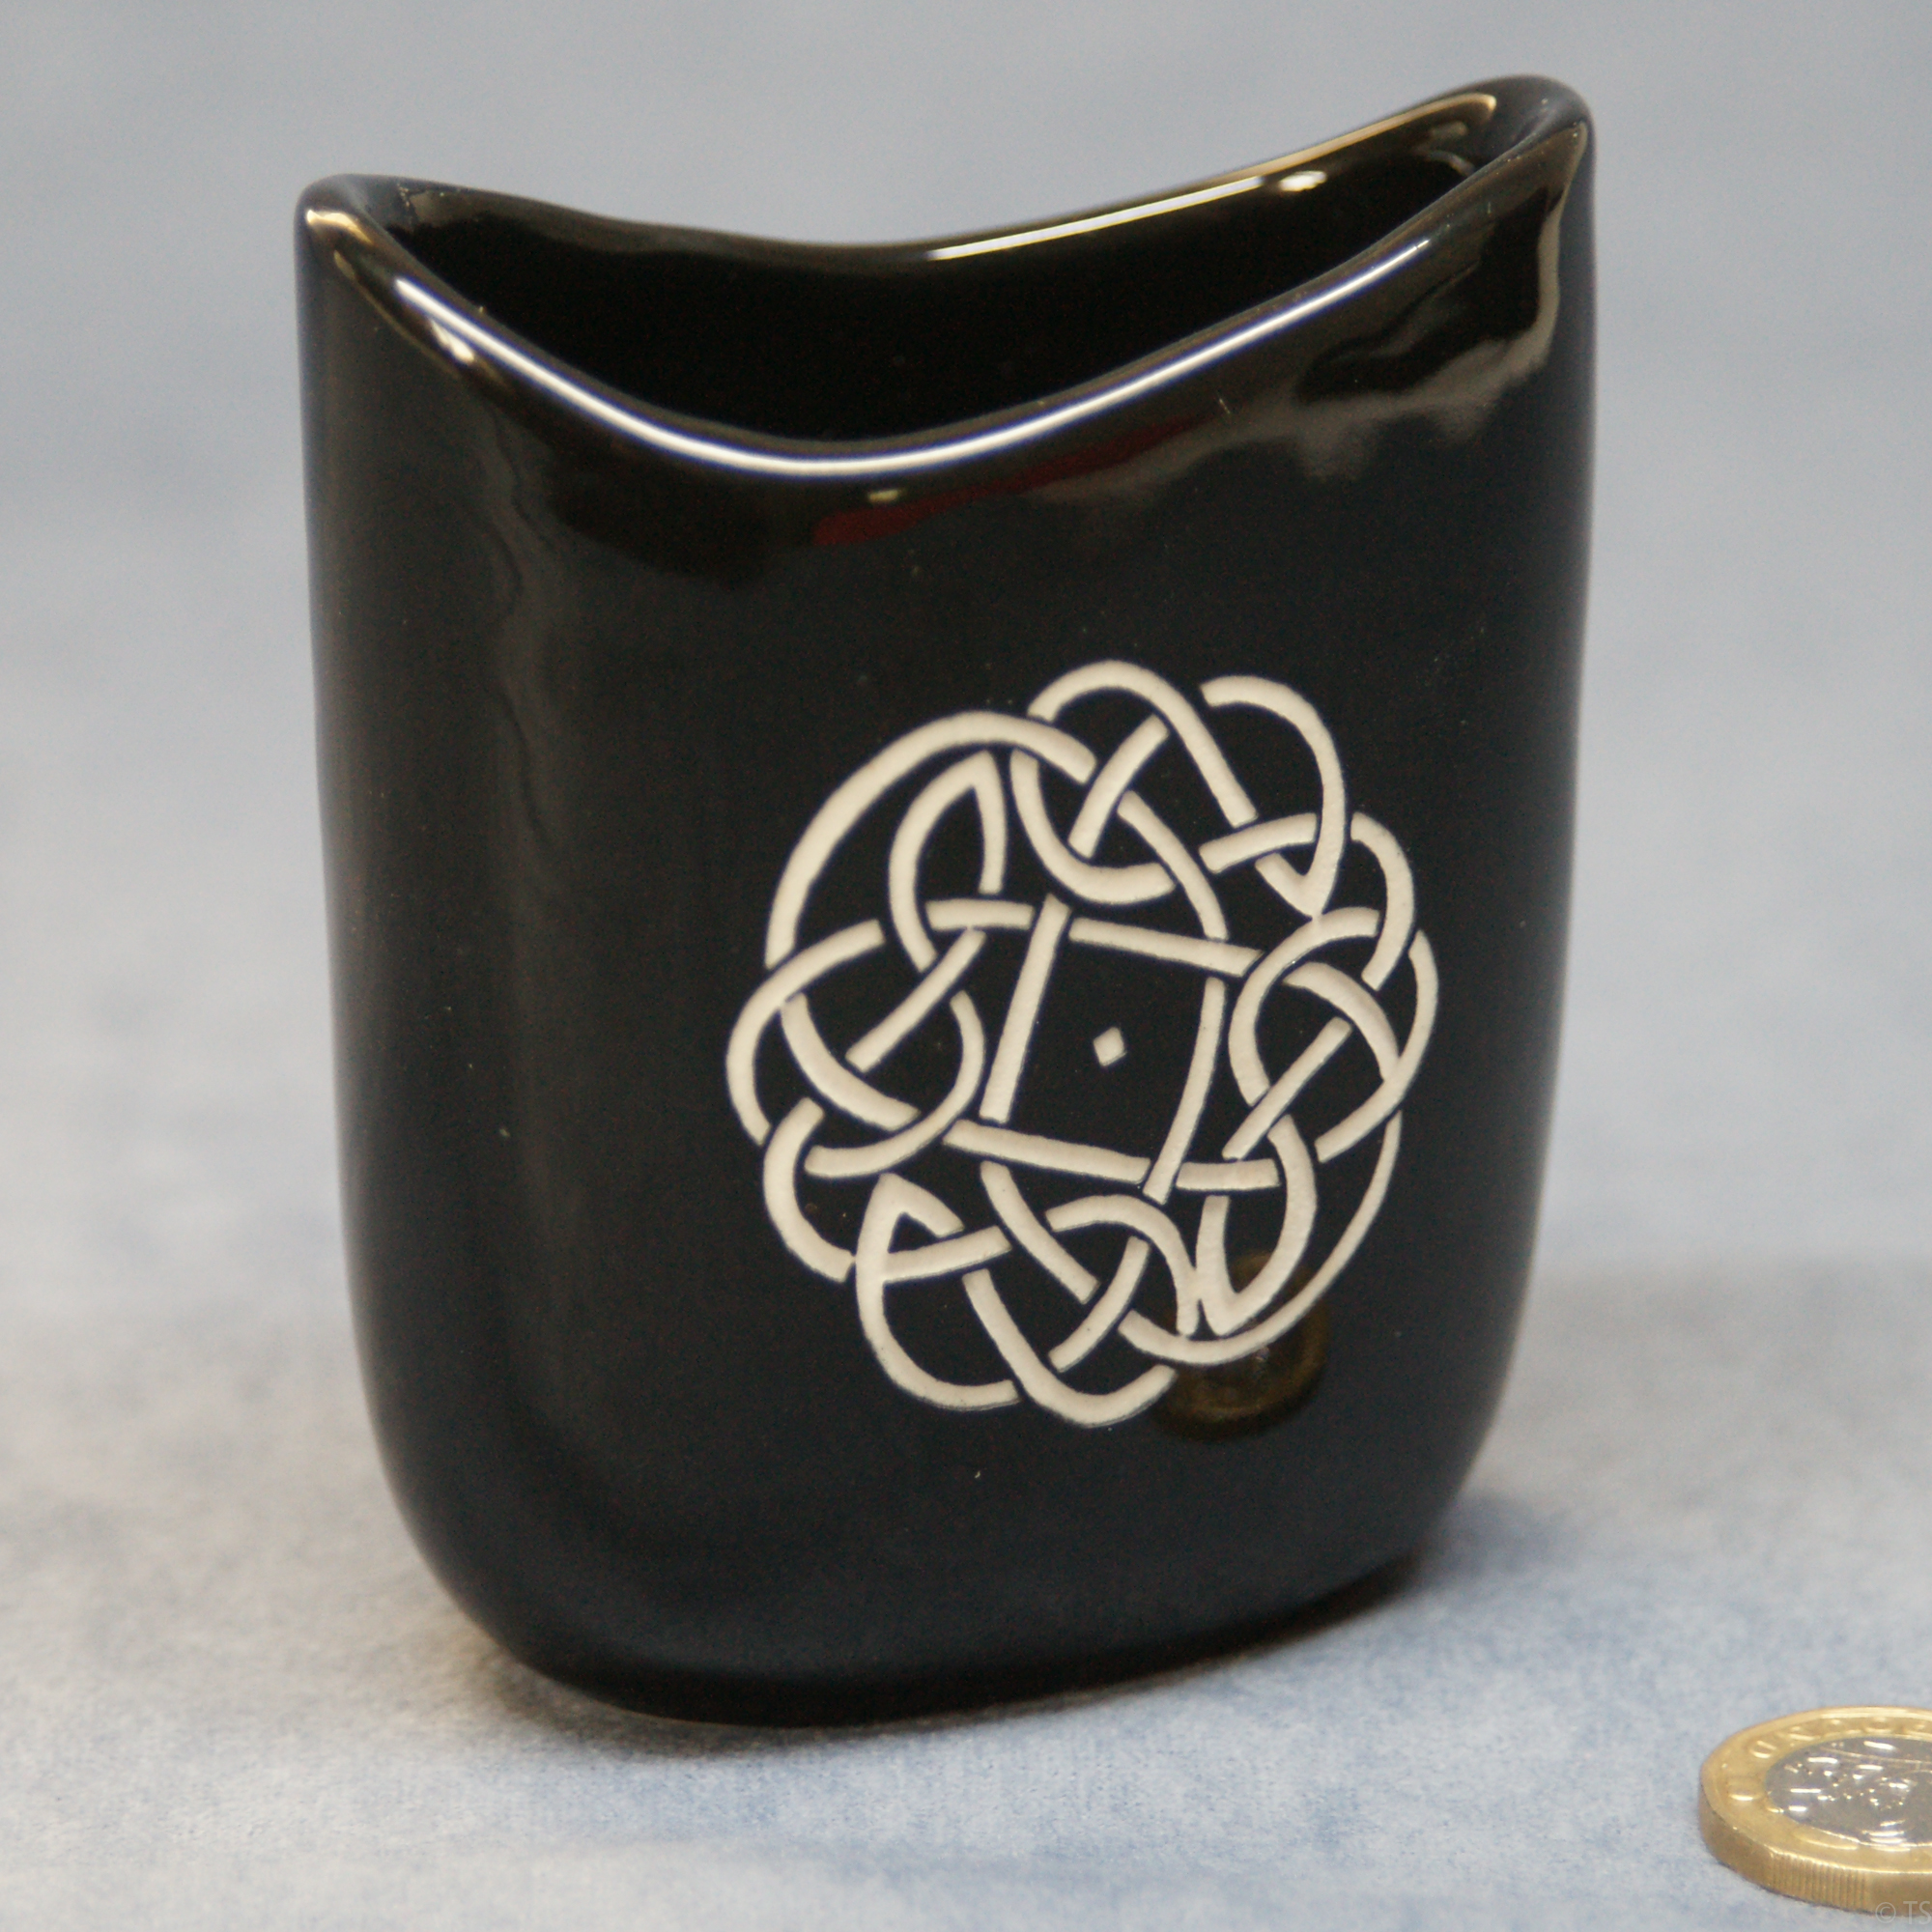 Small Oval Vase Black